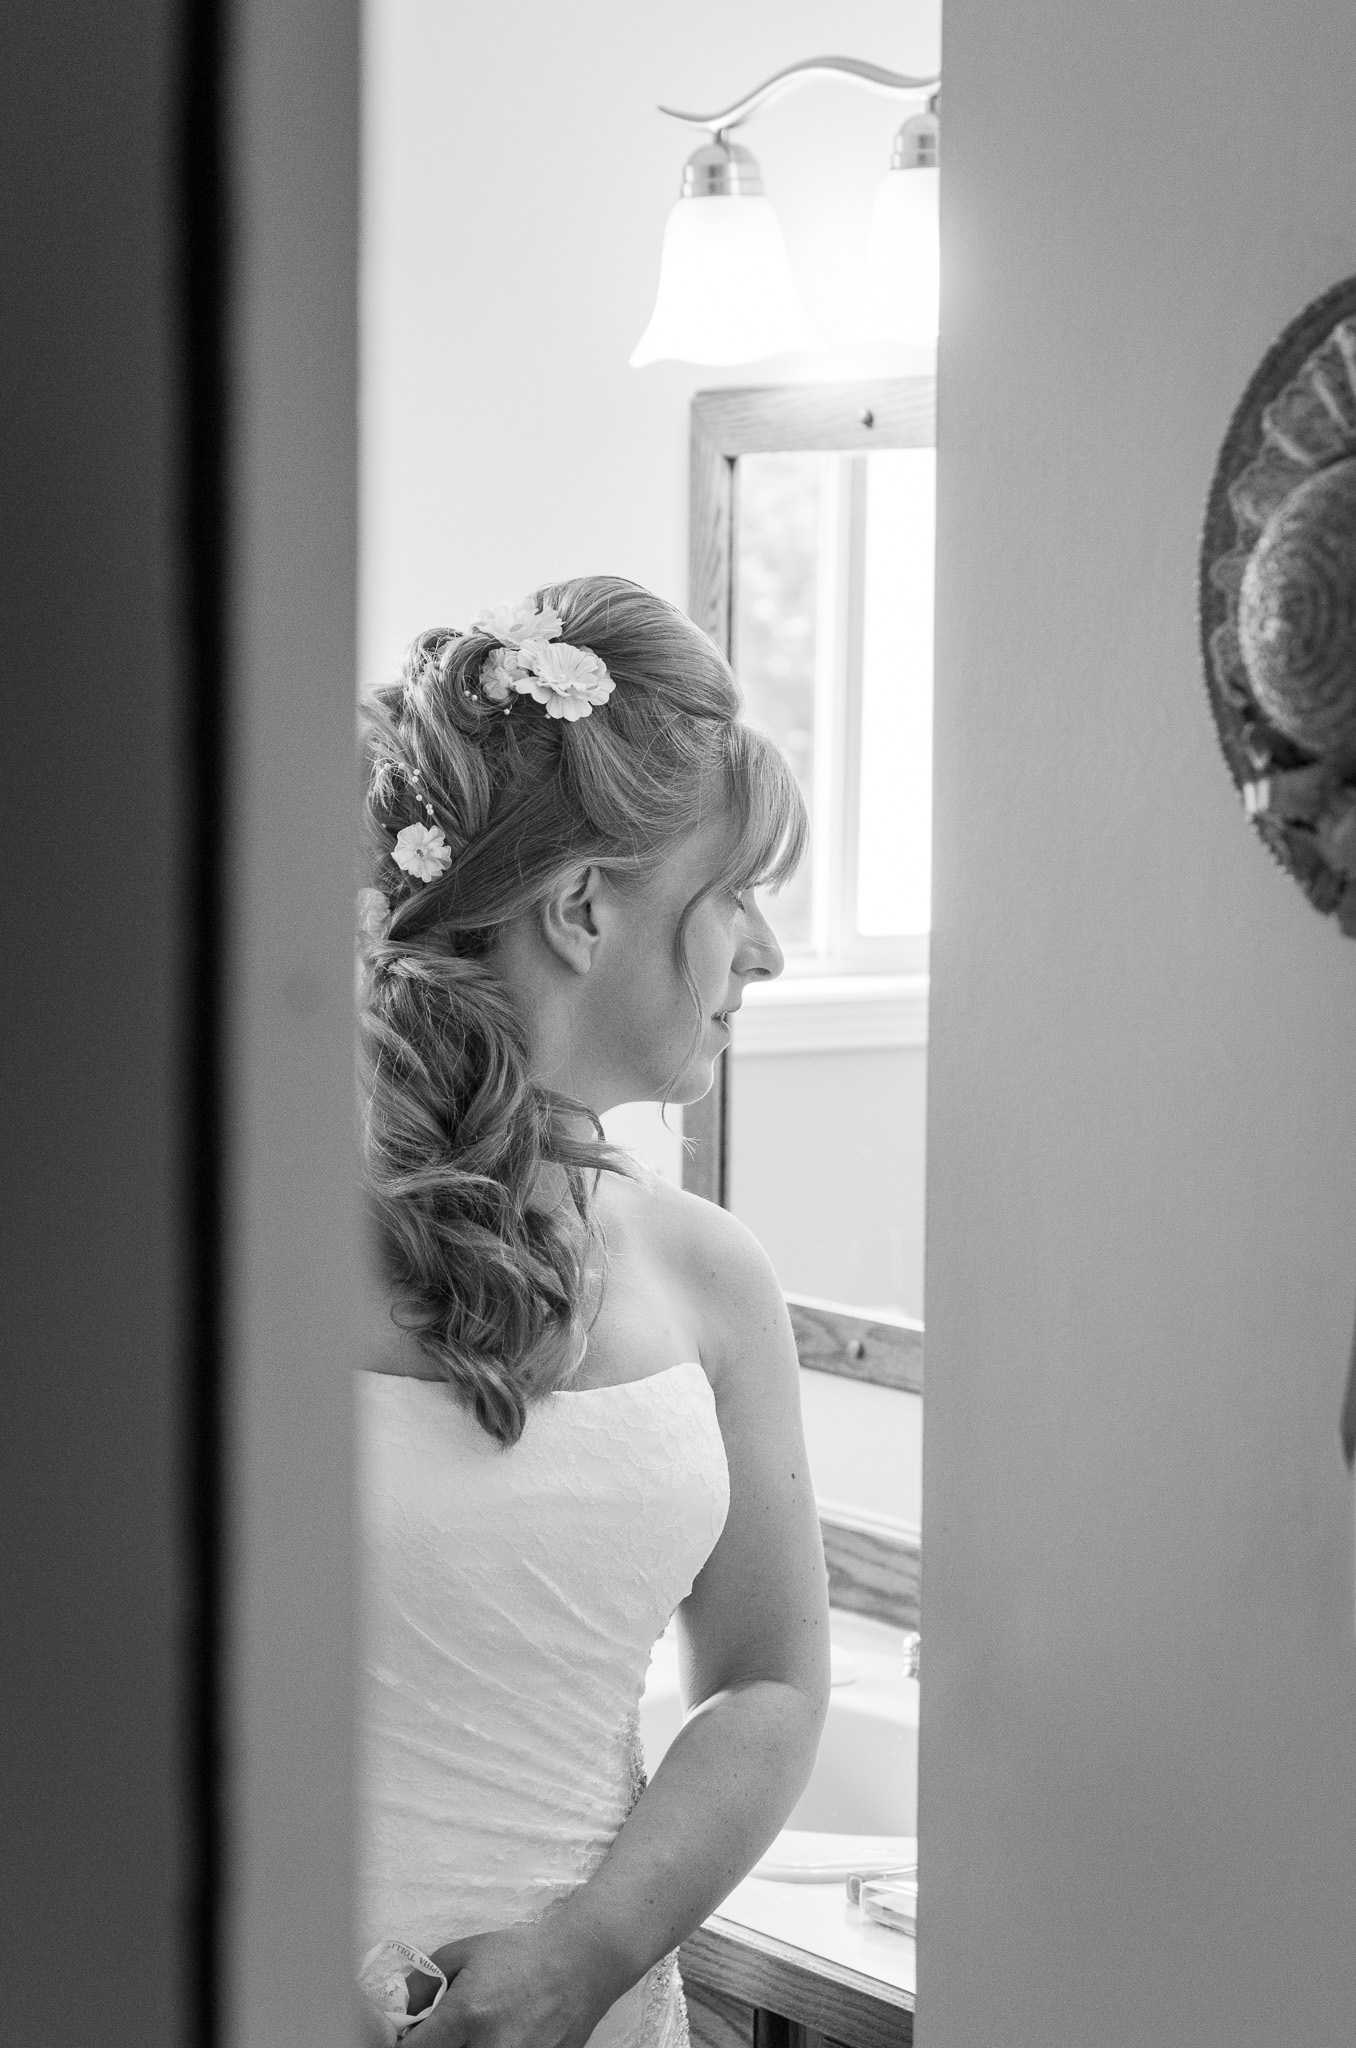 Krystina and Aaron's amazing wedding day! - Photos by Alan Bailward Photography - http://bailwardphotography.com